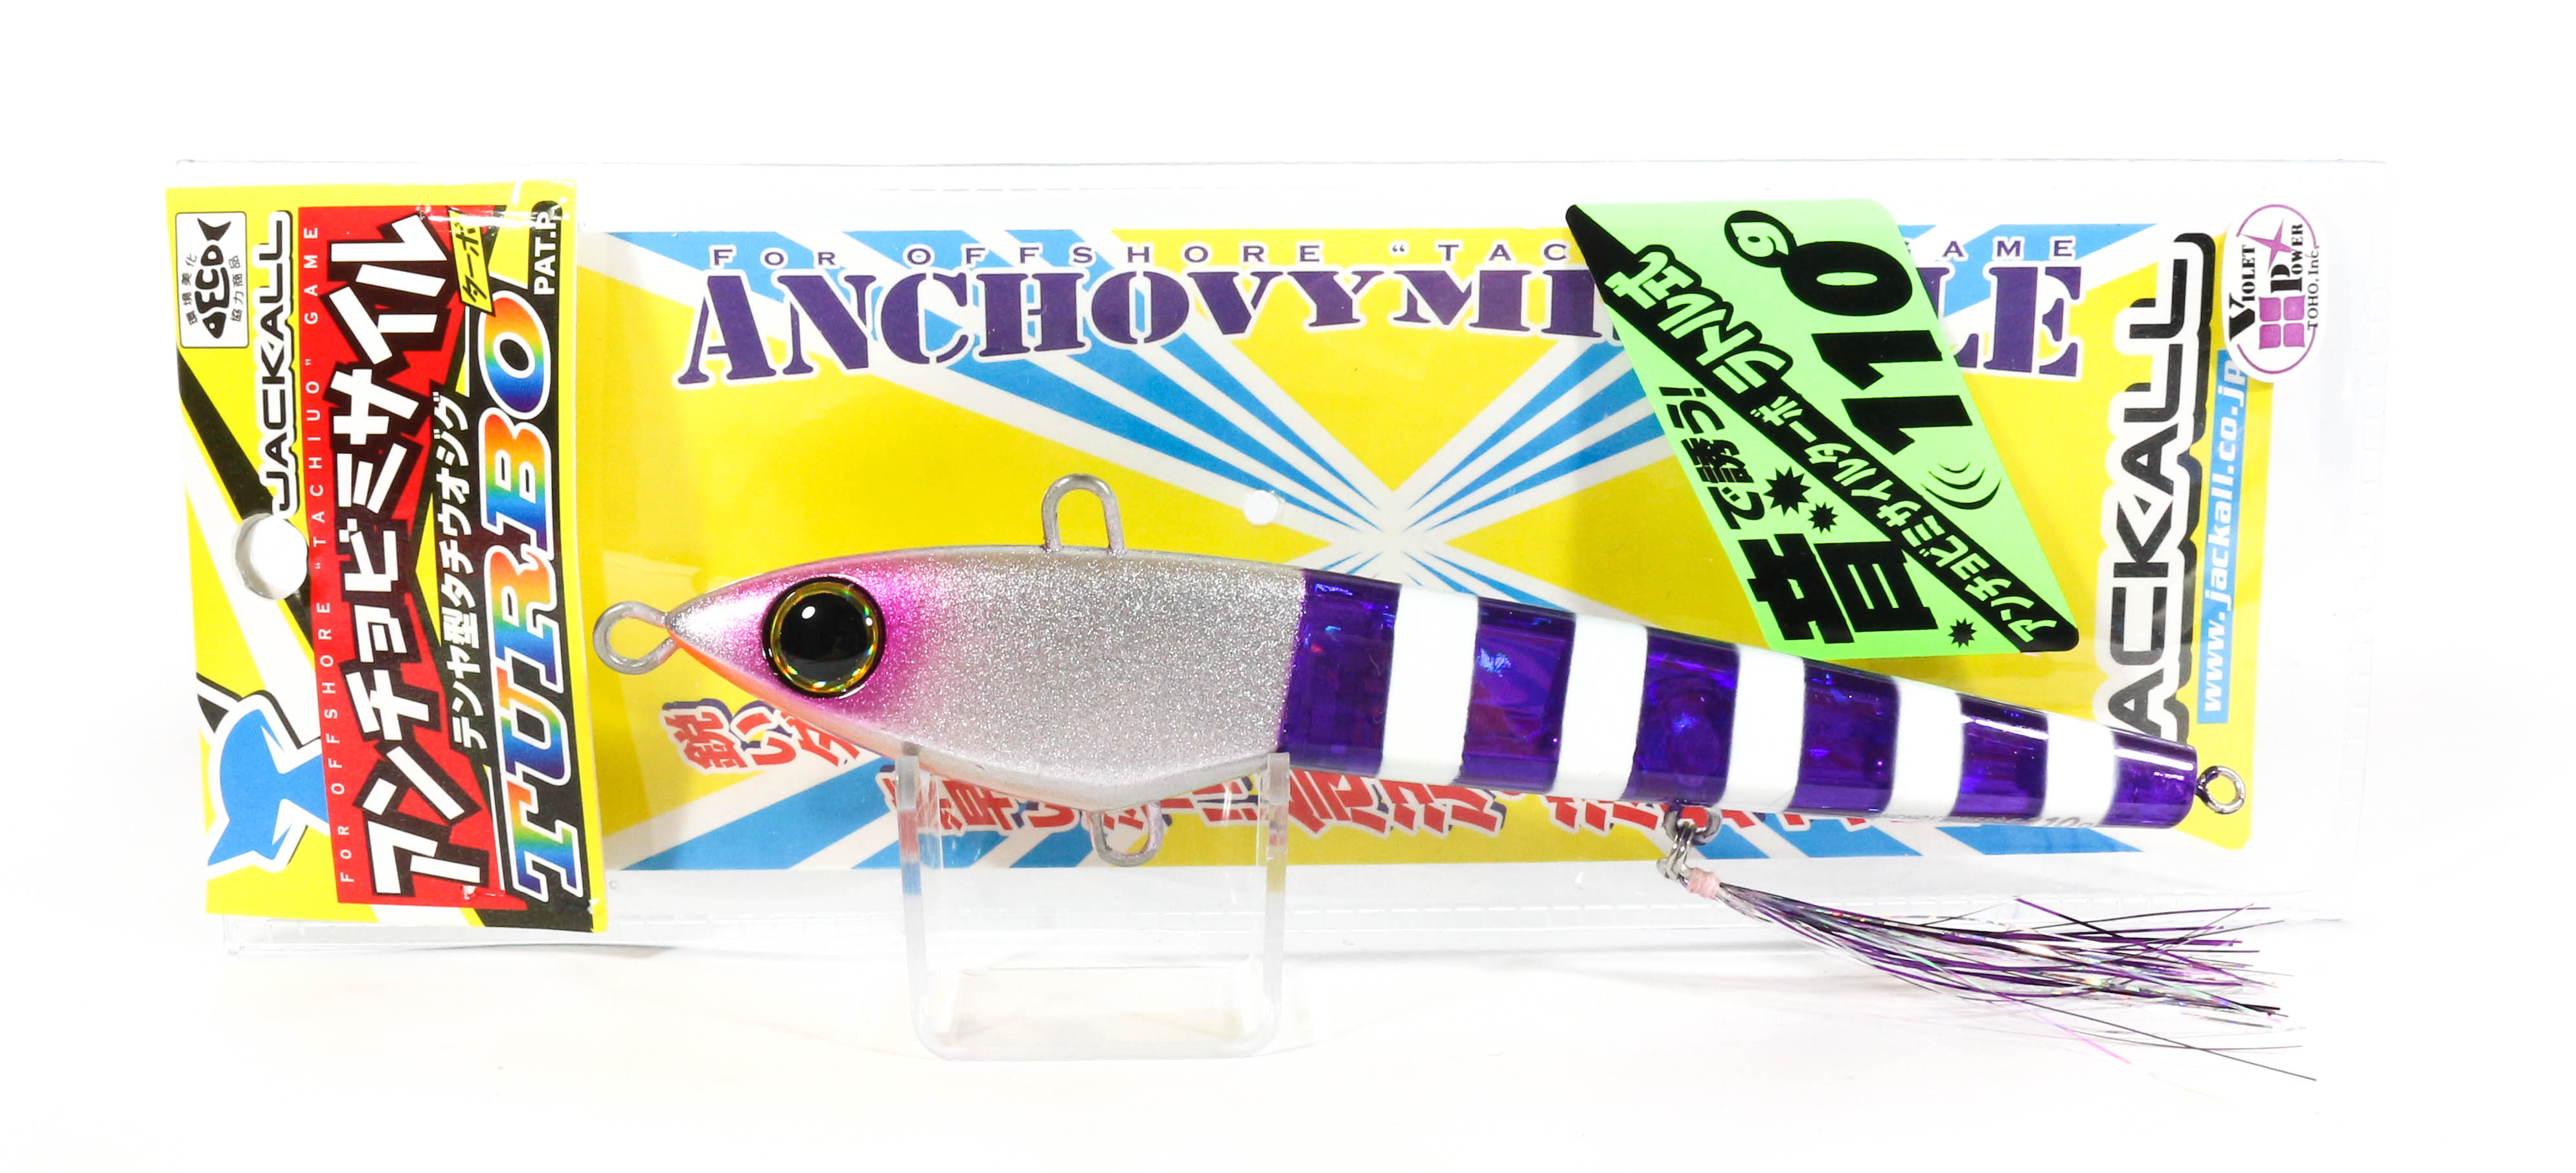 Sale Jackall Anchovy Missile Turbo RattleShiki Jig 110 grams Purple Stripe (5481